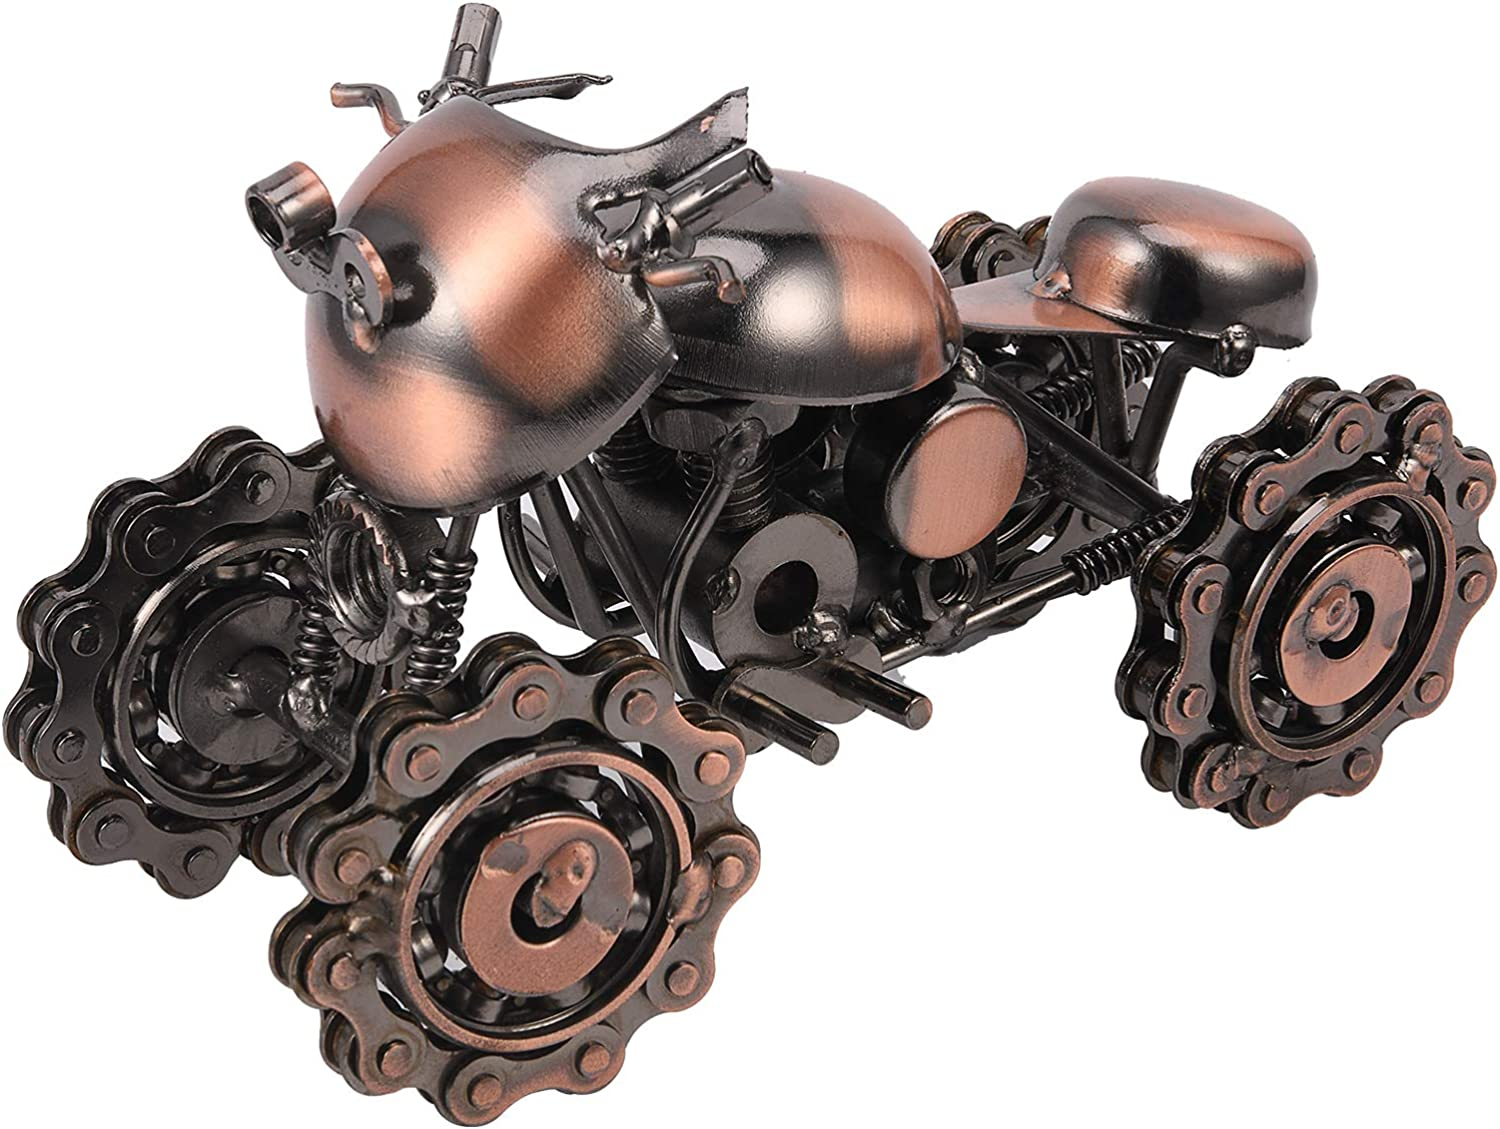 free shipping Lulonpon Vintage Today's only Iron Motorbike Mo Motorcycle Handcrafted Model